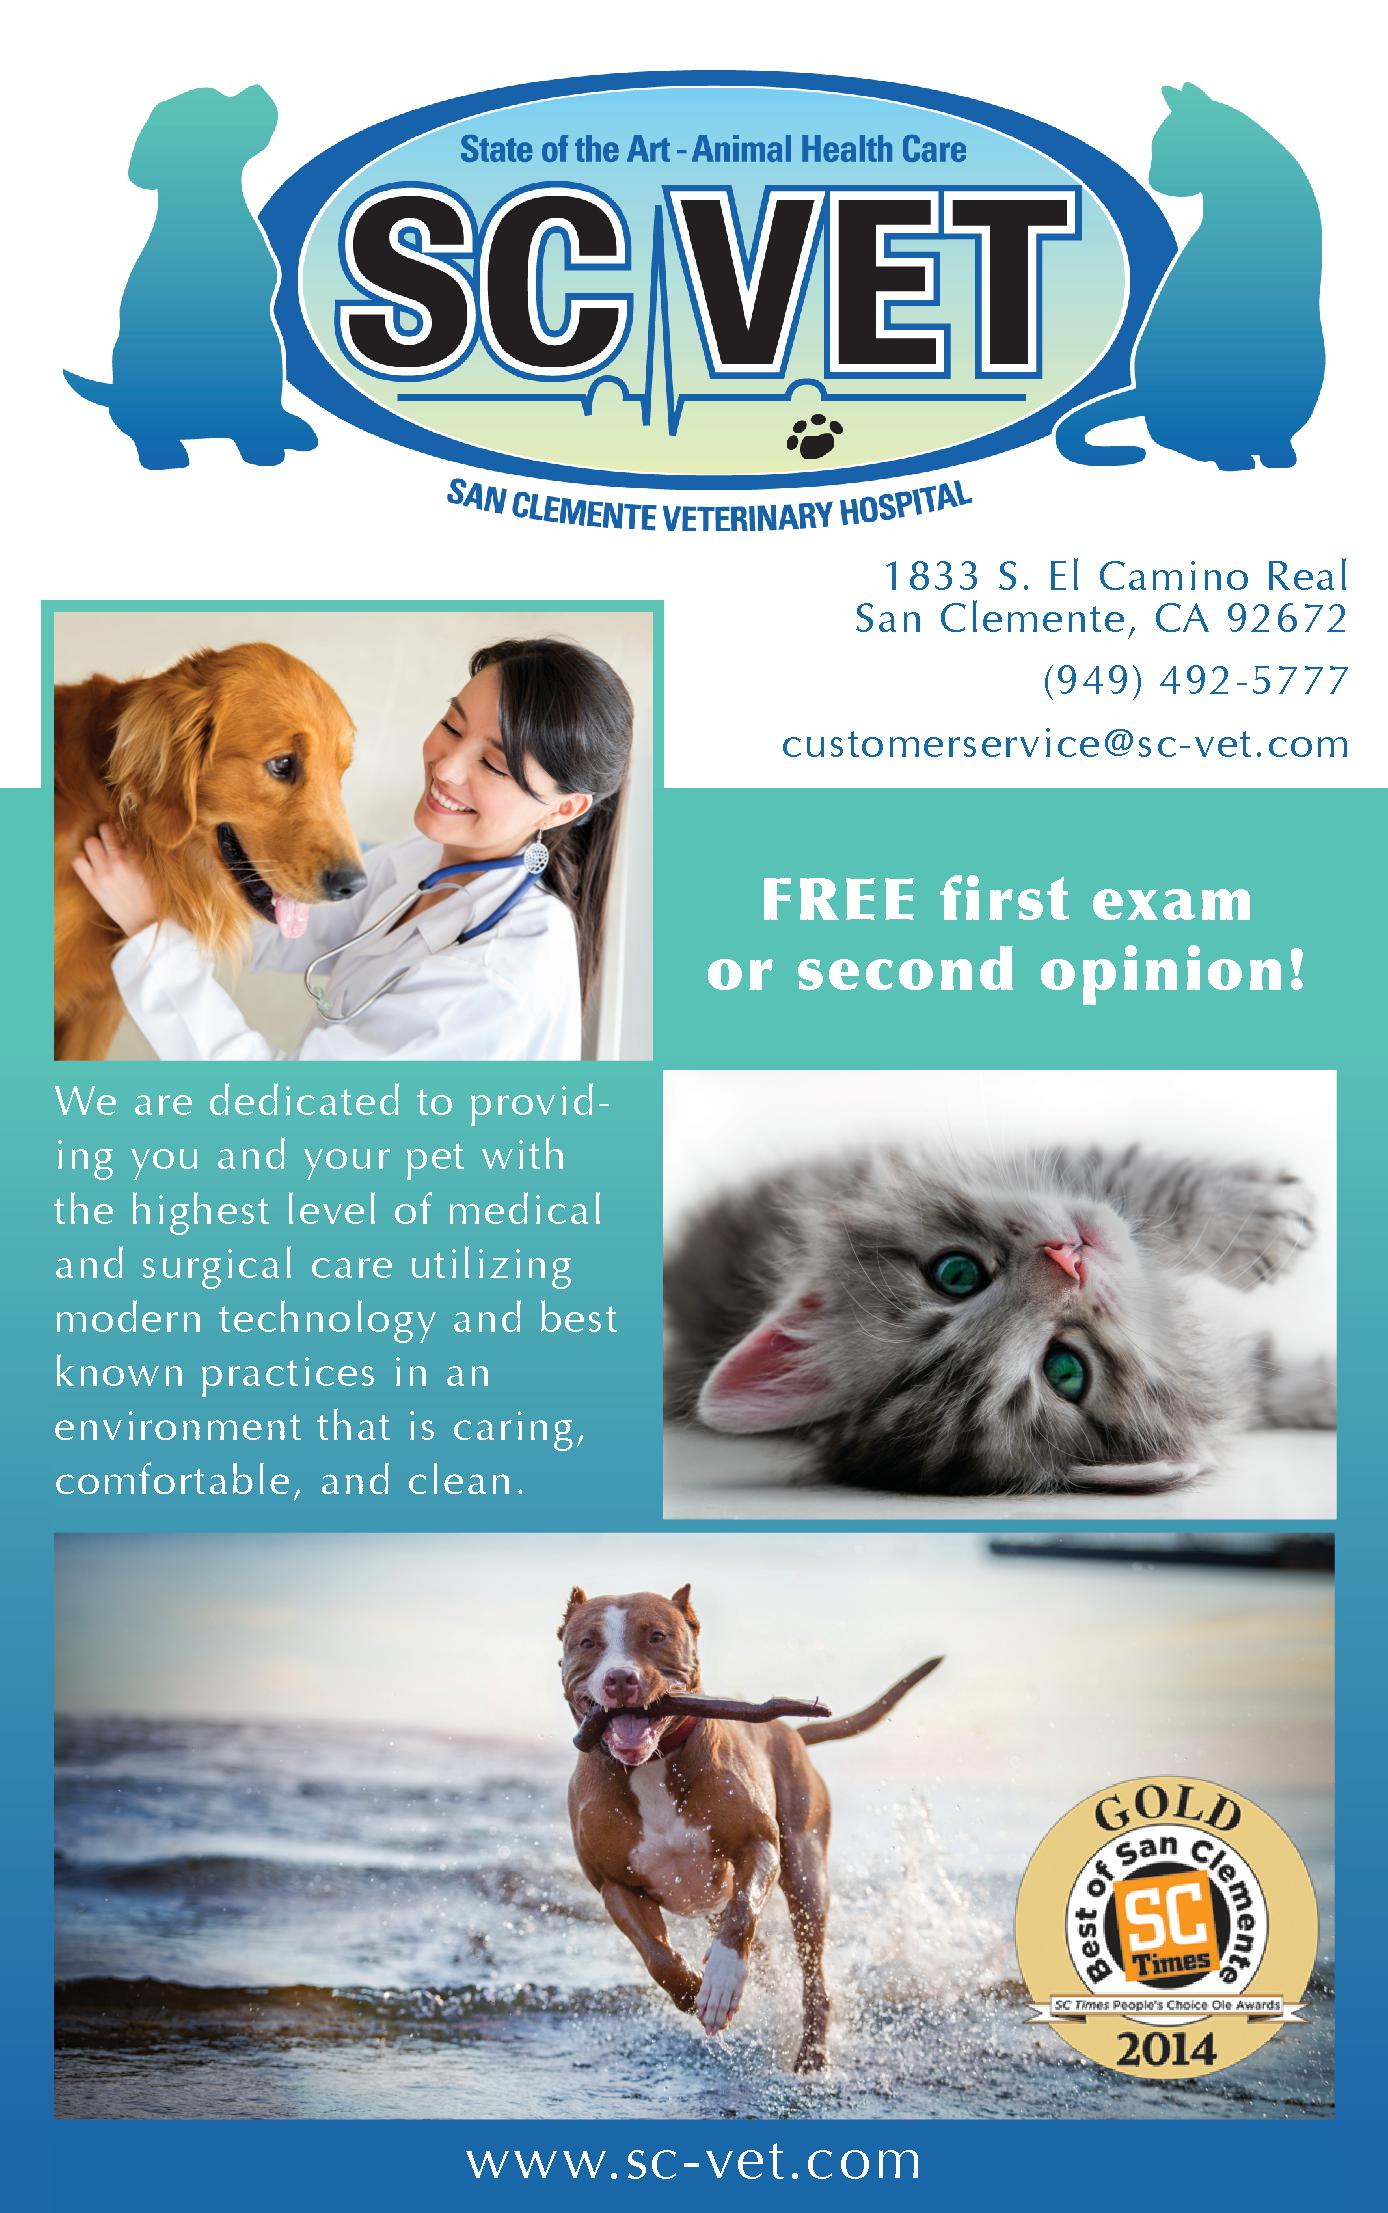 San Clemente Veterinary Hospital